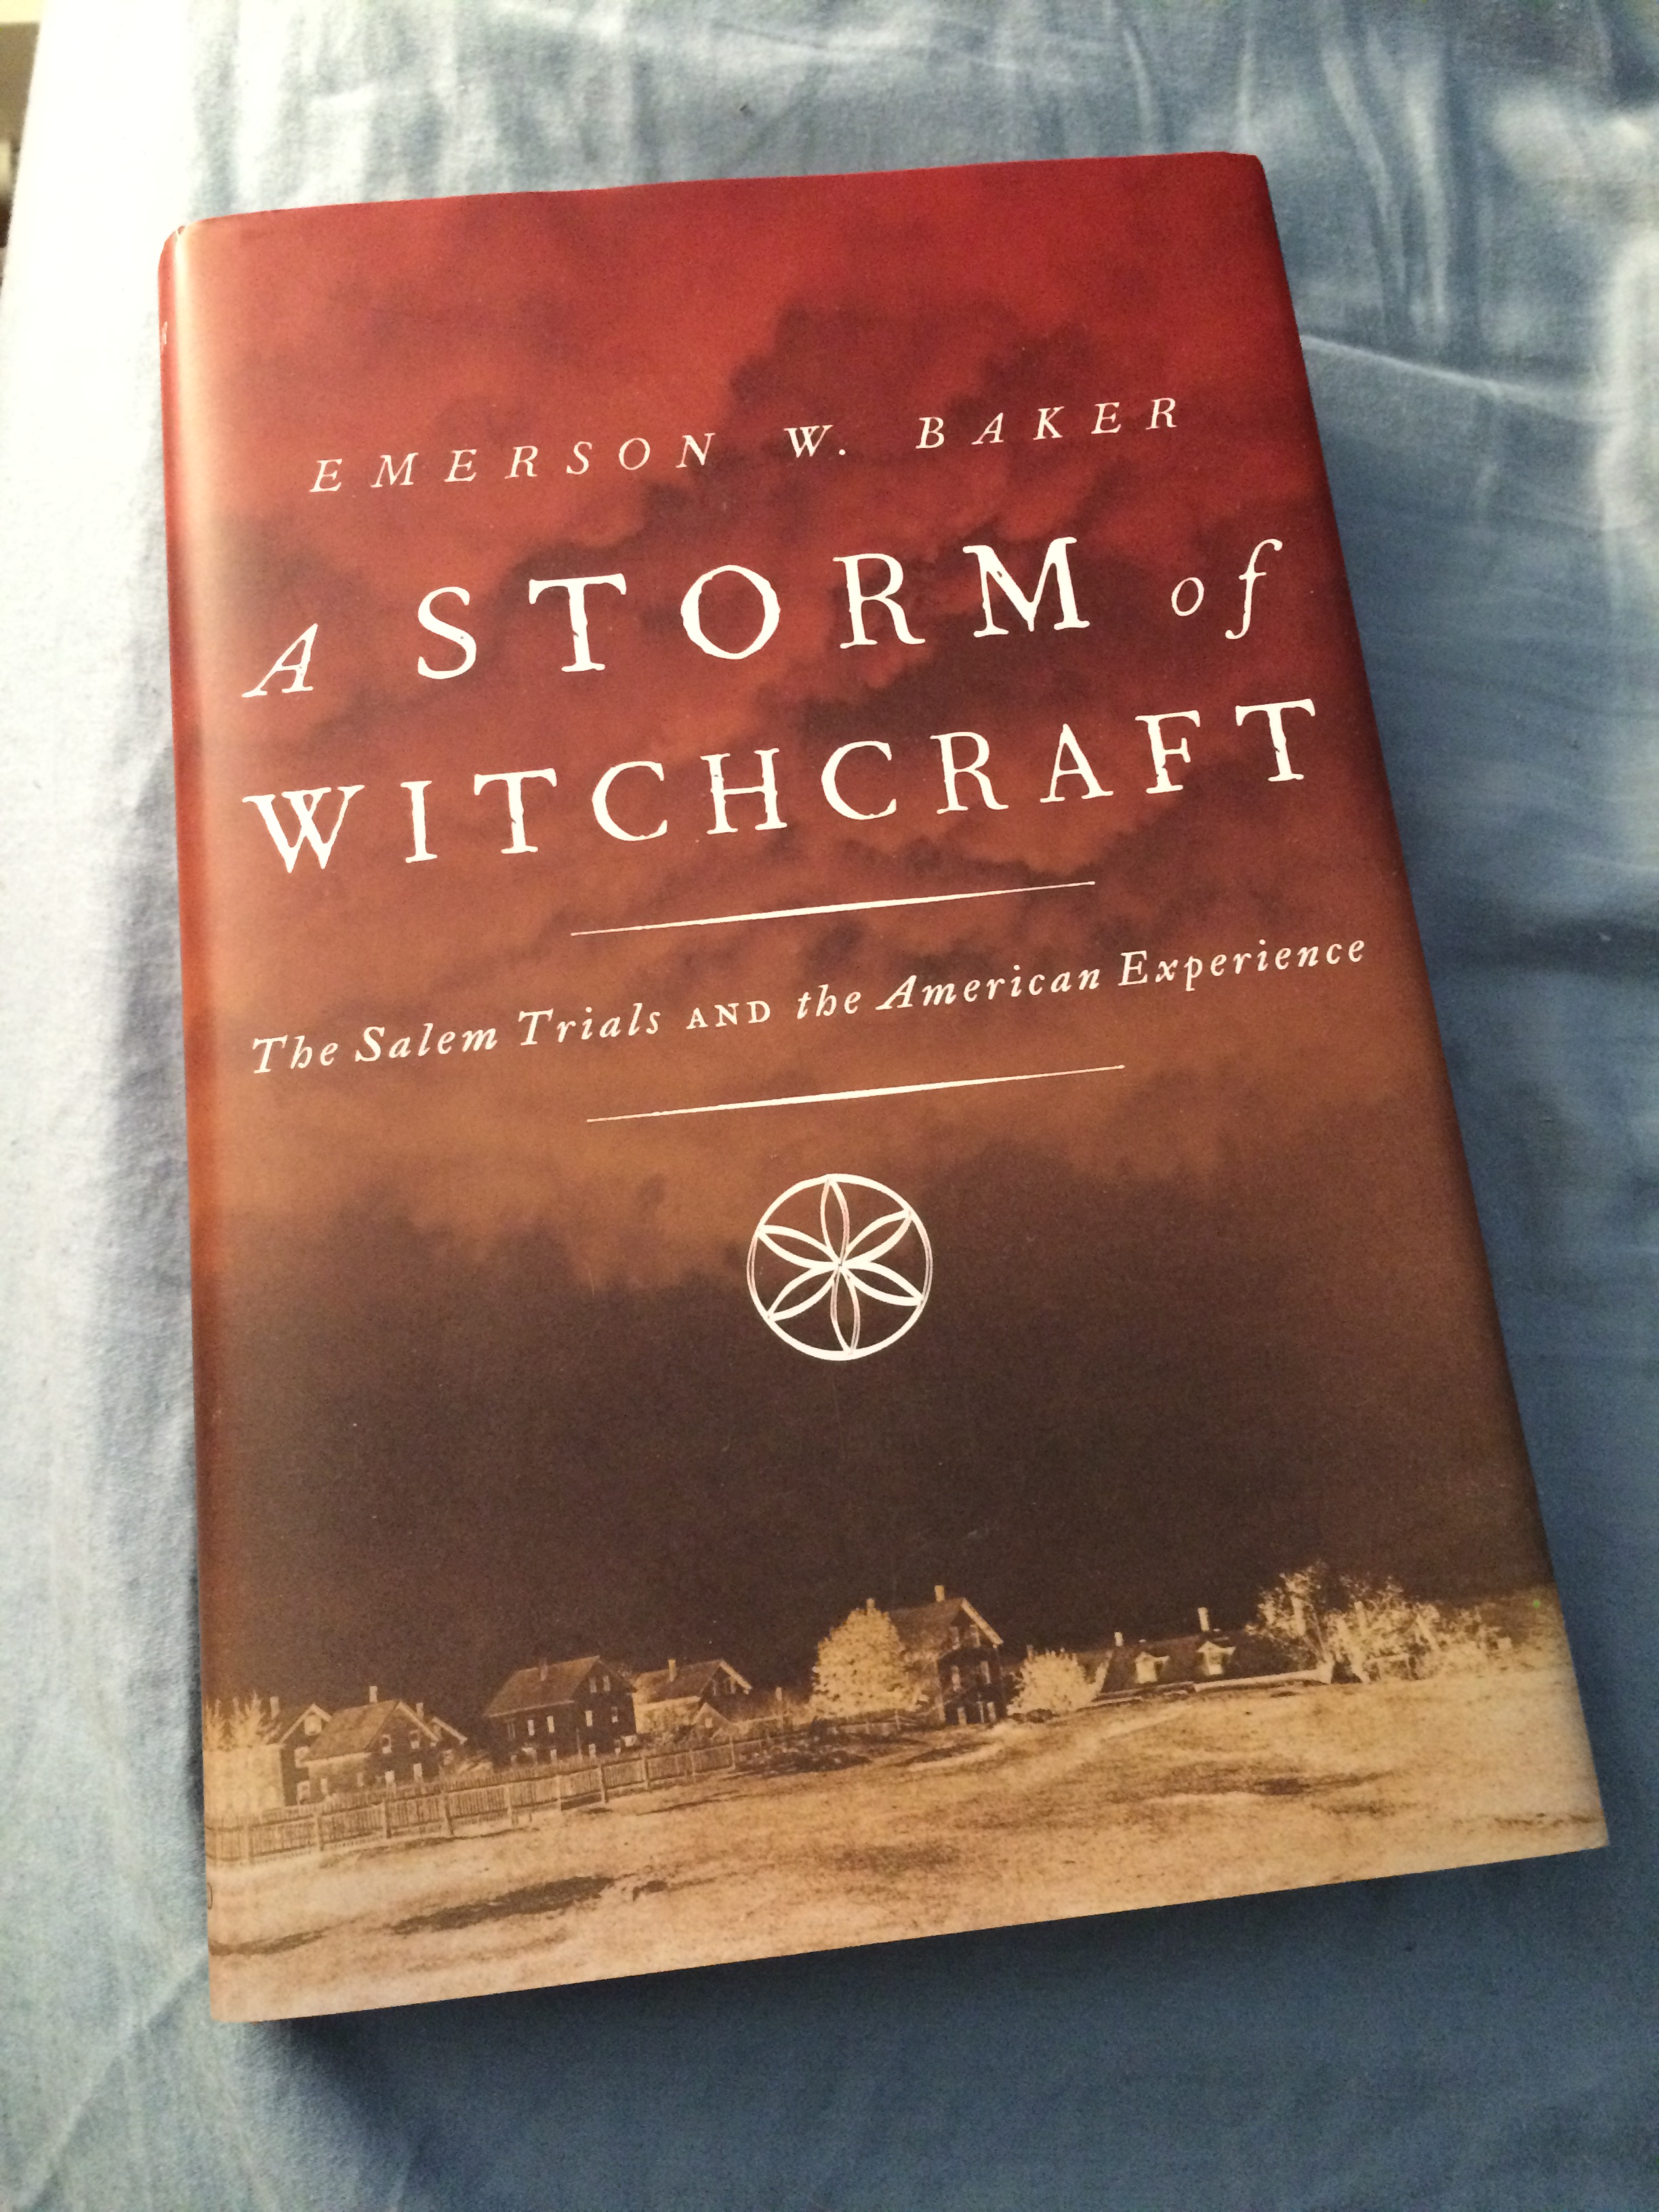 essay on the salem witchcraft trials View and download salem witch trials essays examples also discover topics, titles, outlines, thesis statements, and conclusions for your salem witch trials essay.